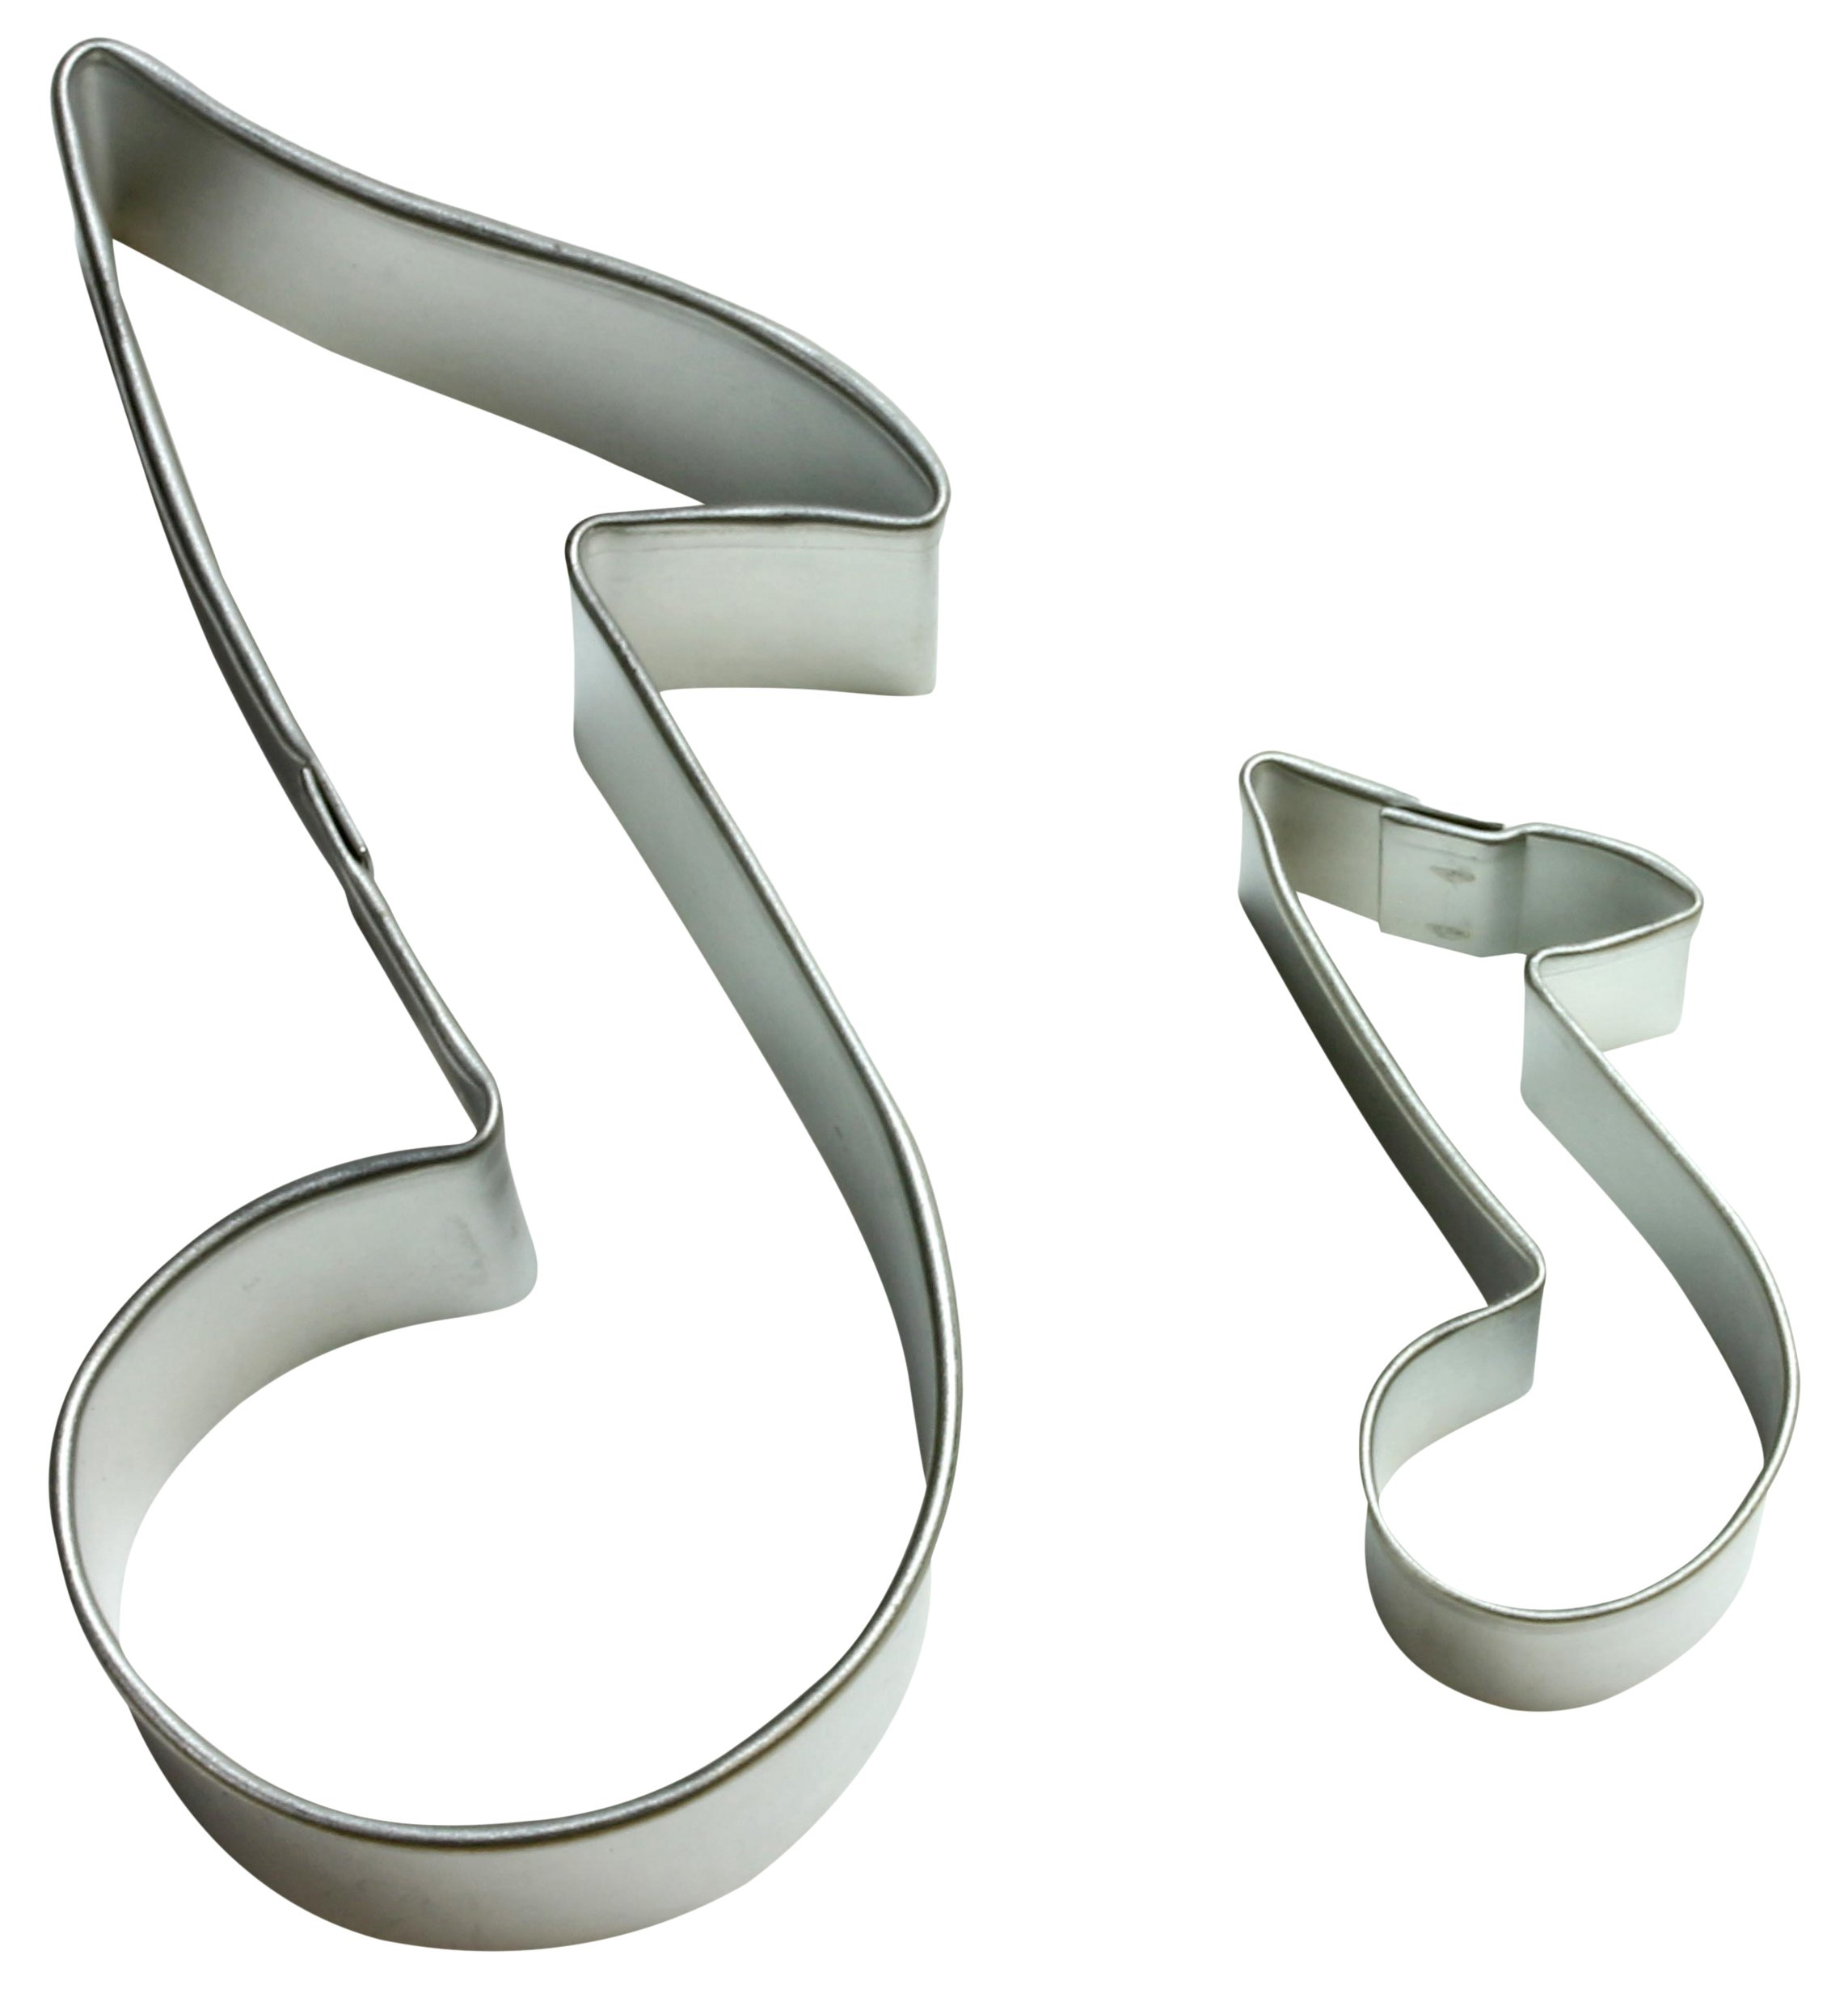 Cybrtrayd 000RM1356-1556 R&M Parent/Child Cookie Cutter Set, 3.5-Inch and 1 to 1.5-Inch, Music Note, Tin